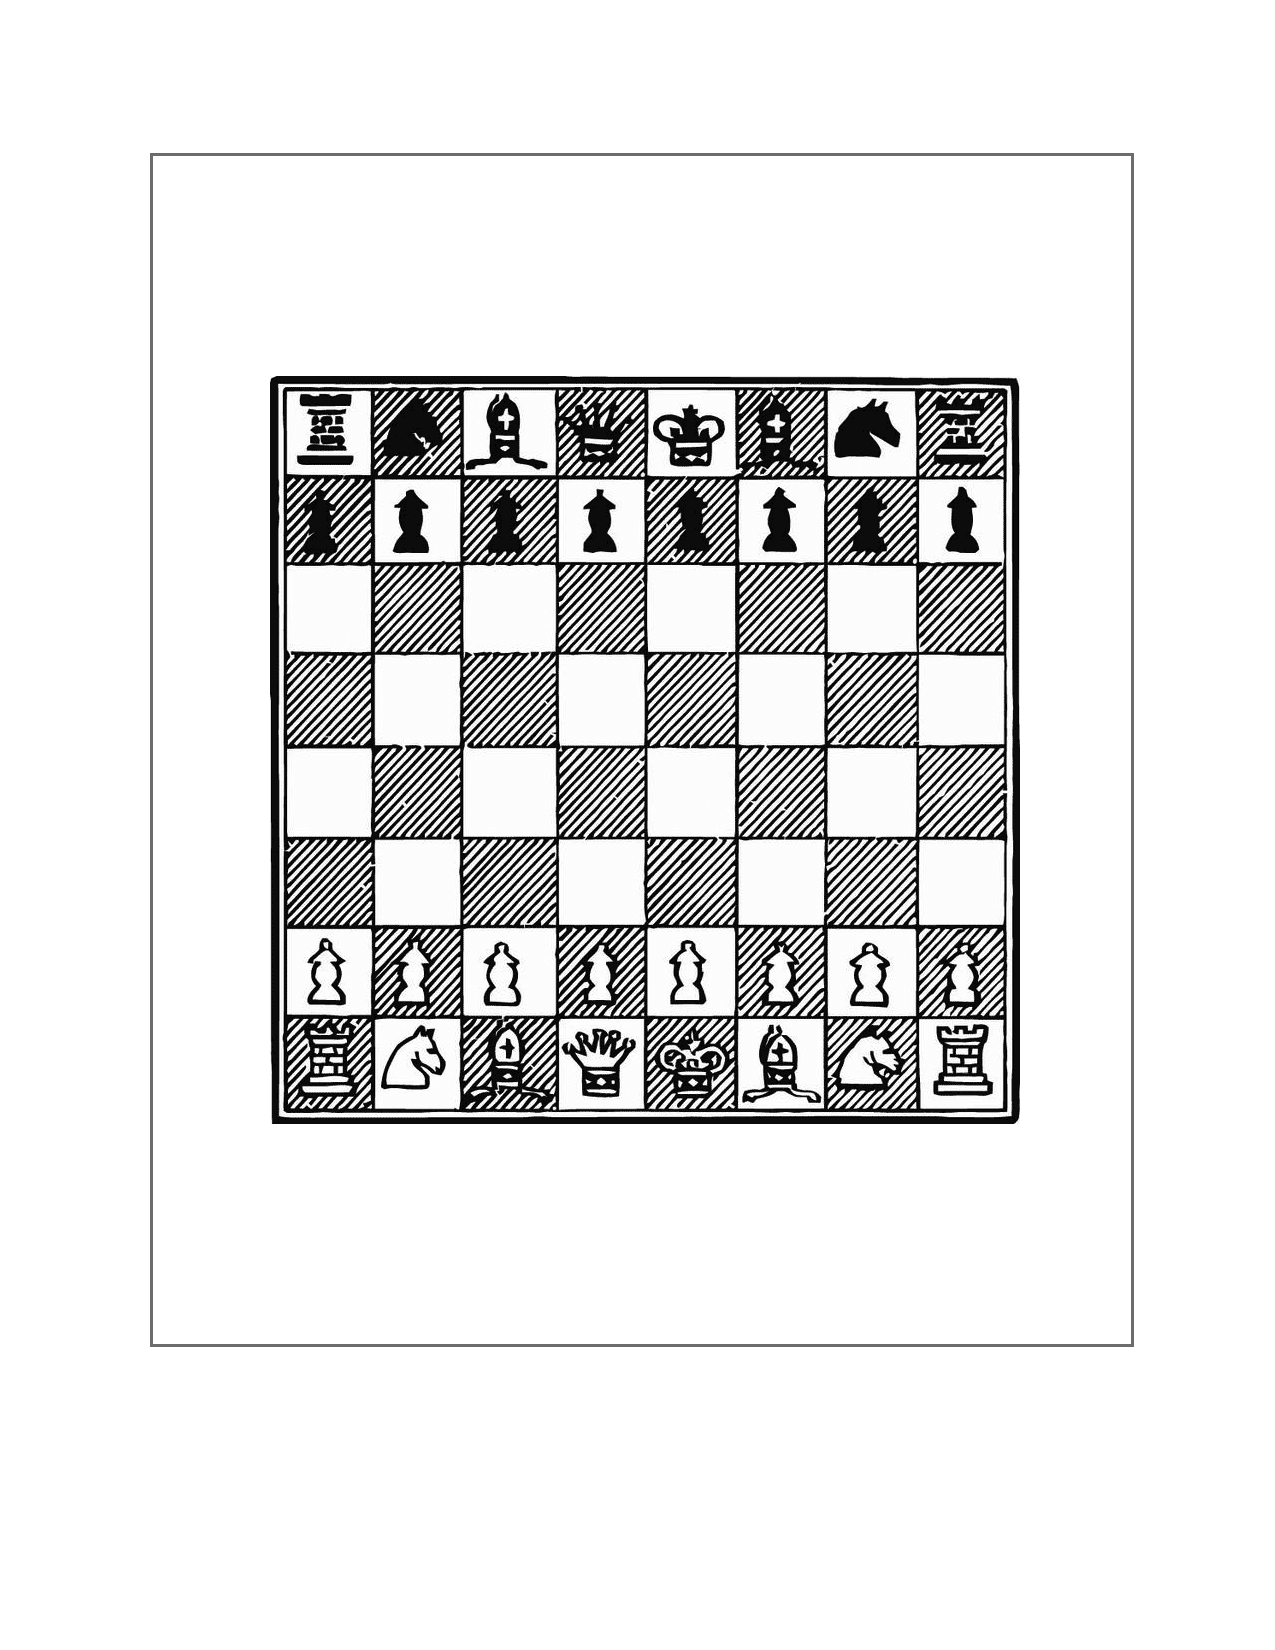 Chess Board Printable Page